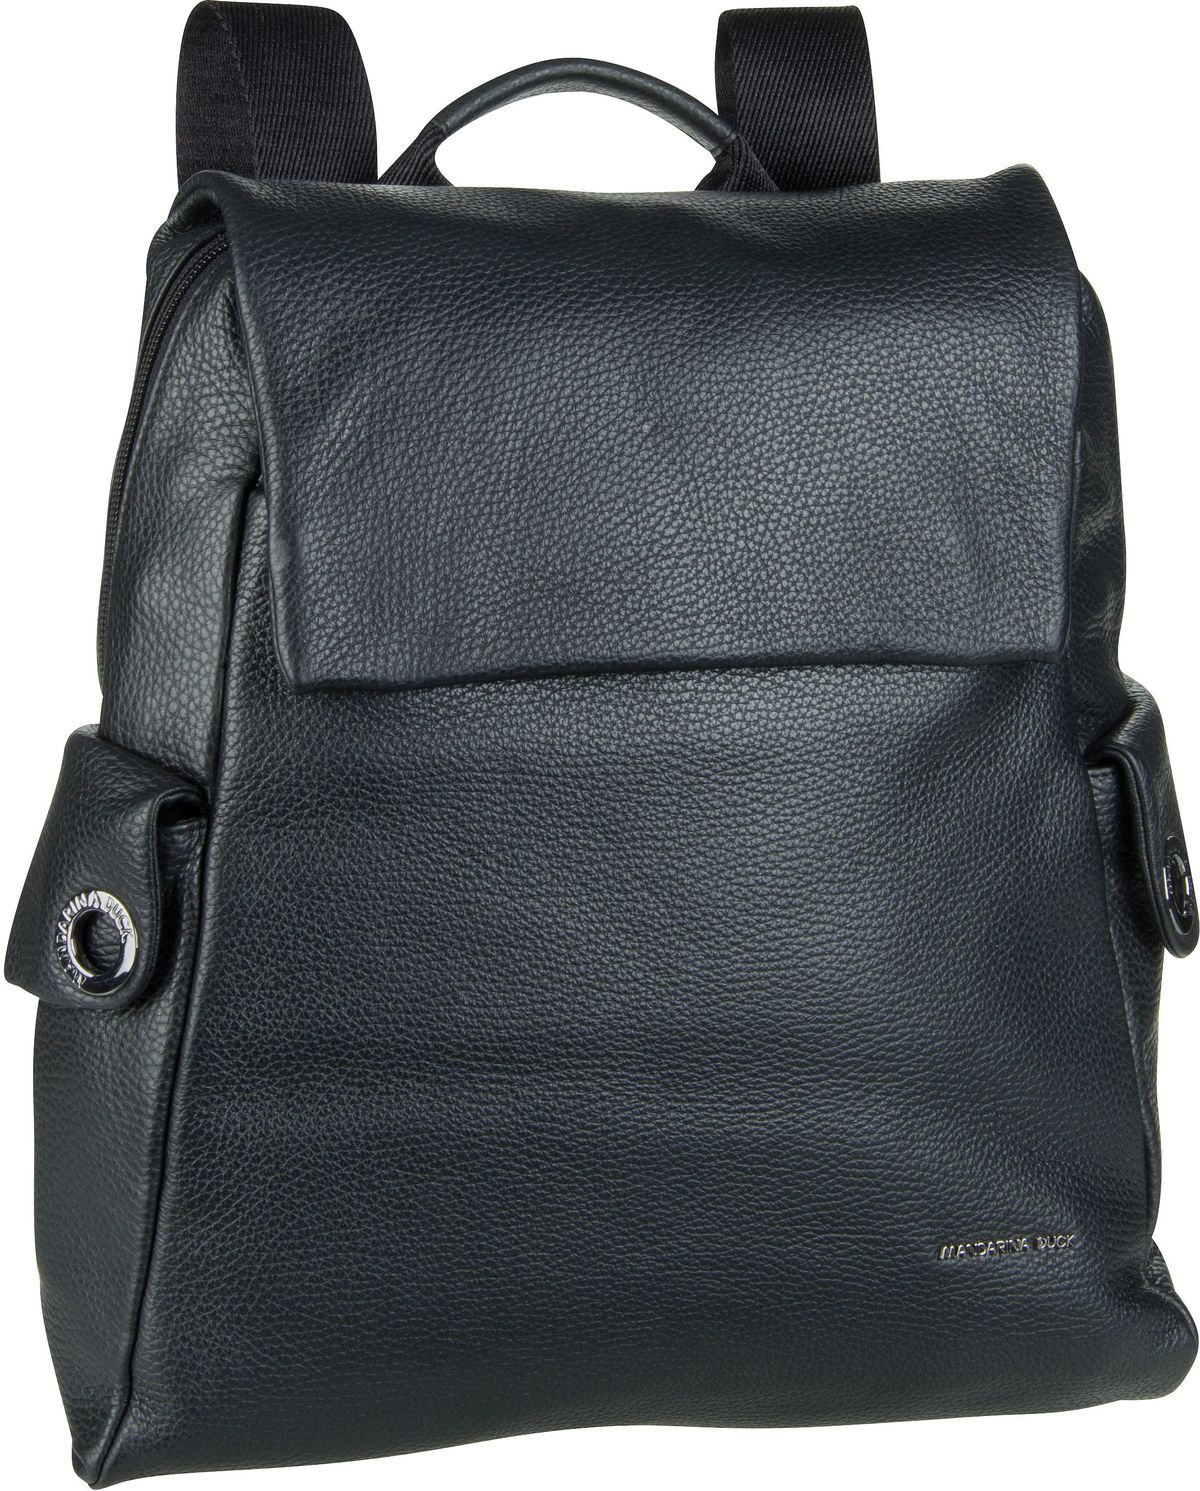 Rucksack / Daypack Mellow Leather Backpack FZT92 Nero